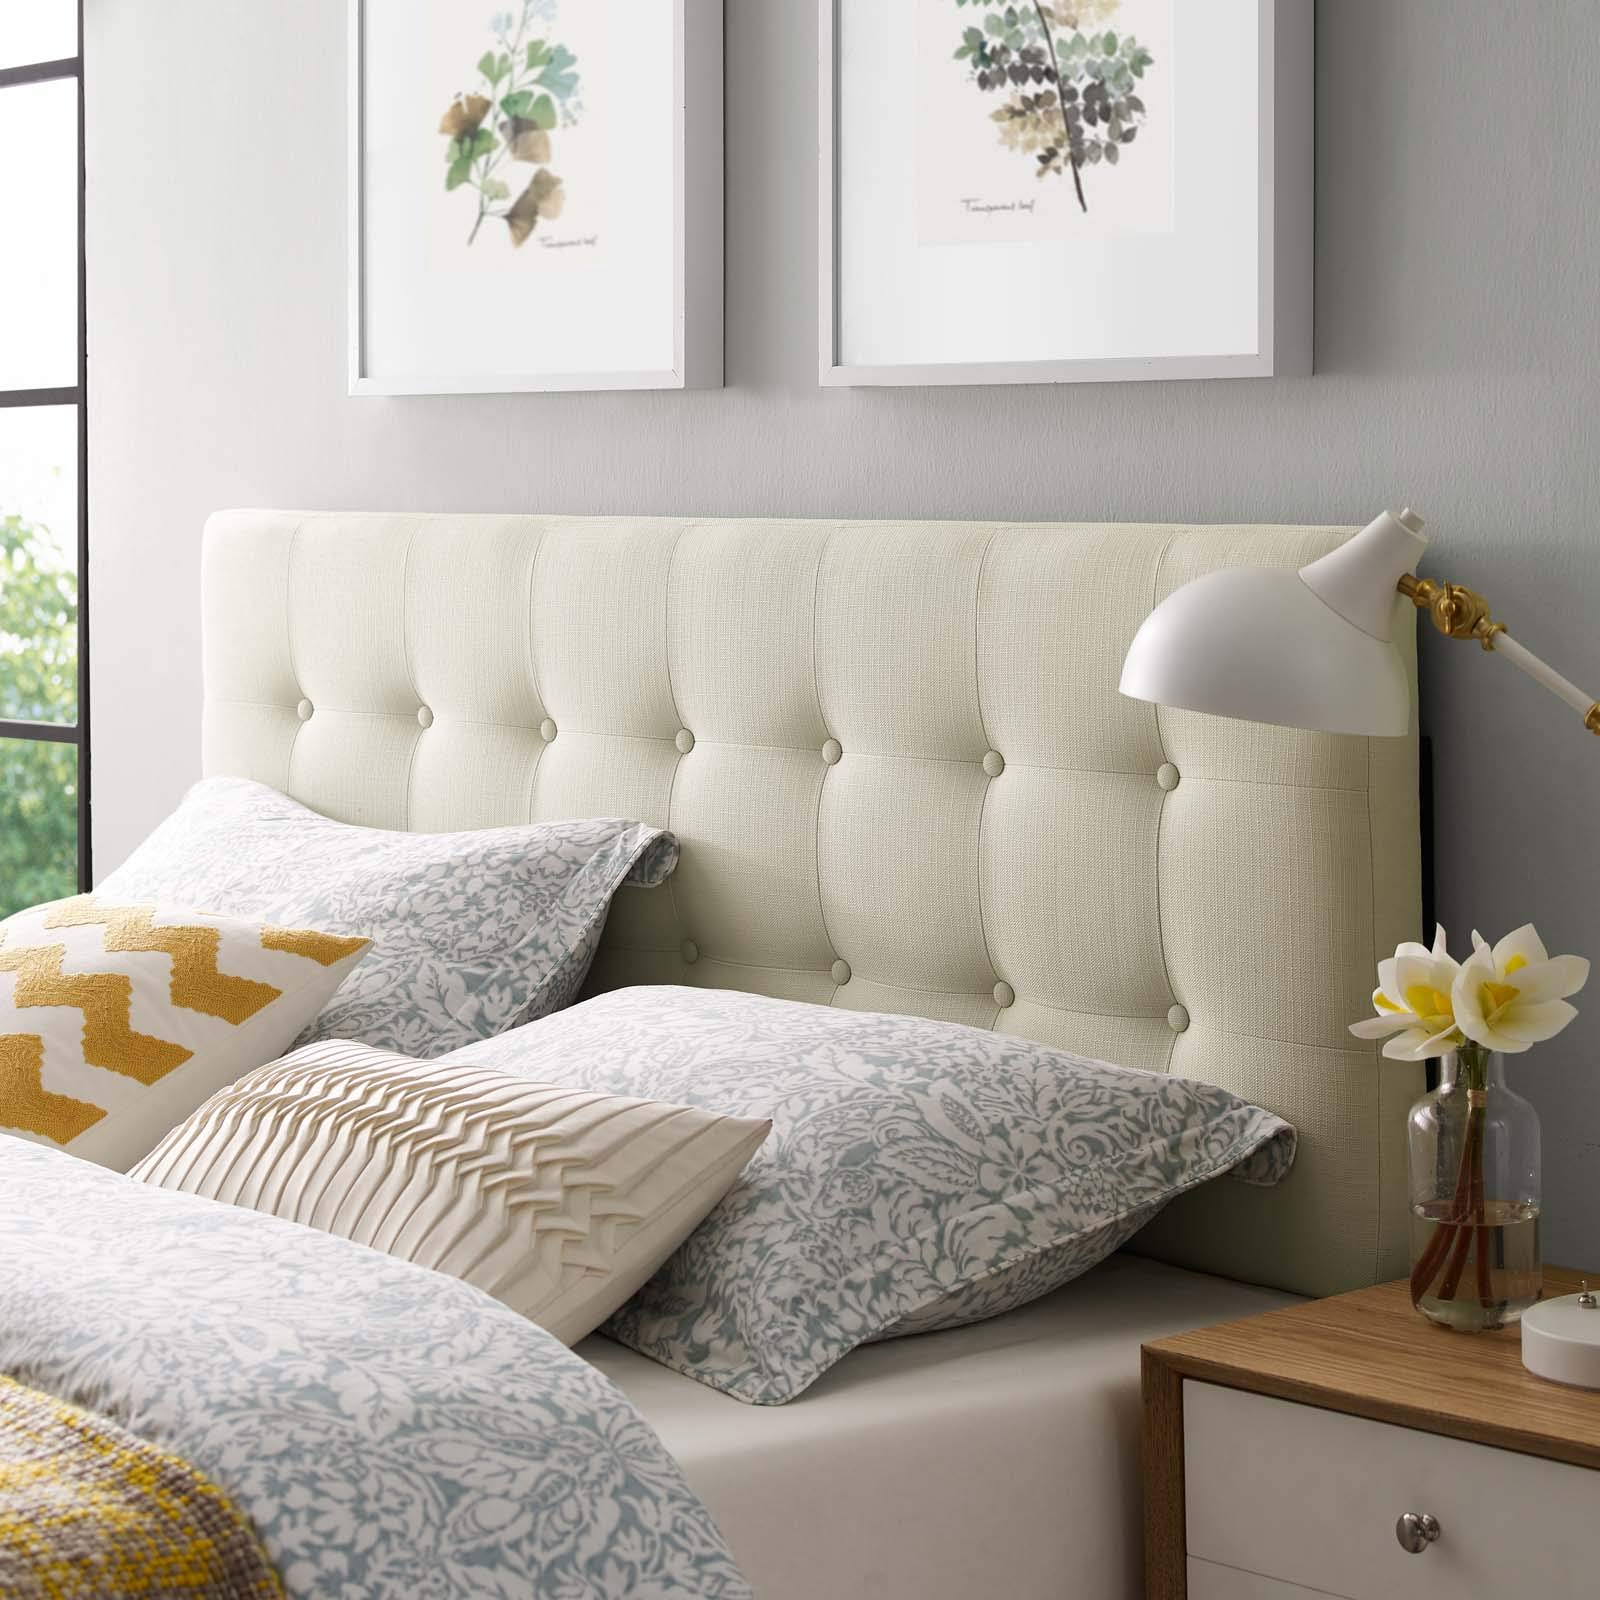 Modway Emily Tufted Button Linen Fabric Upholstered Queen Headboard in Ivory by Modway